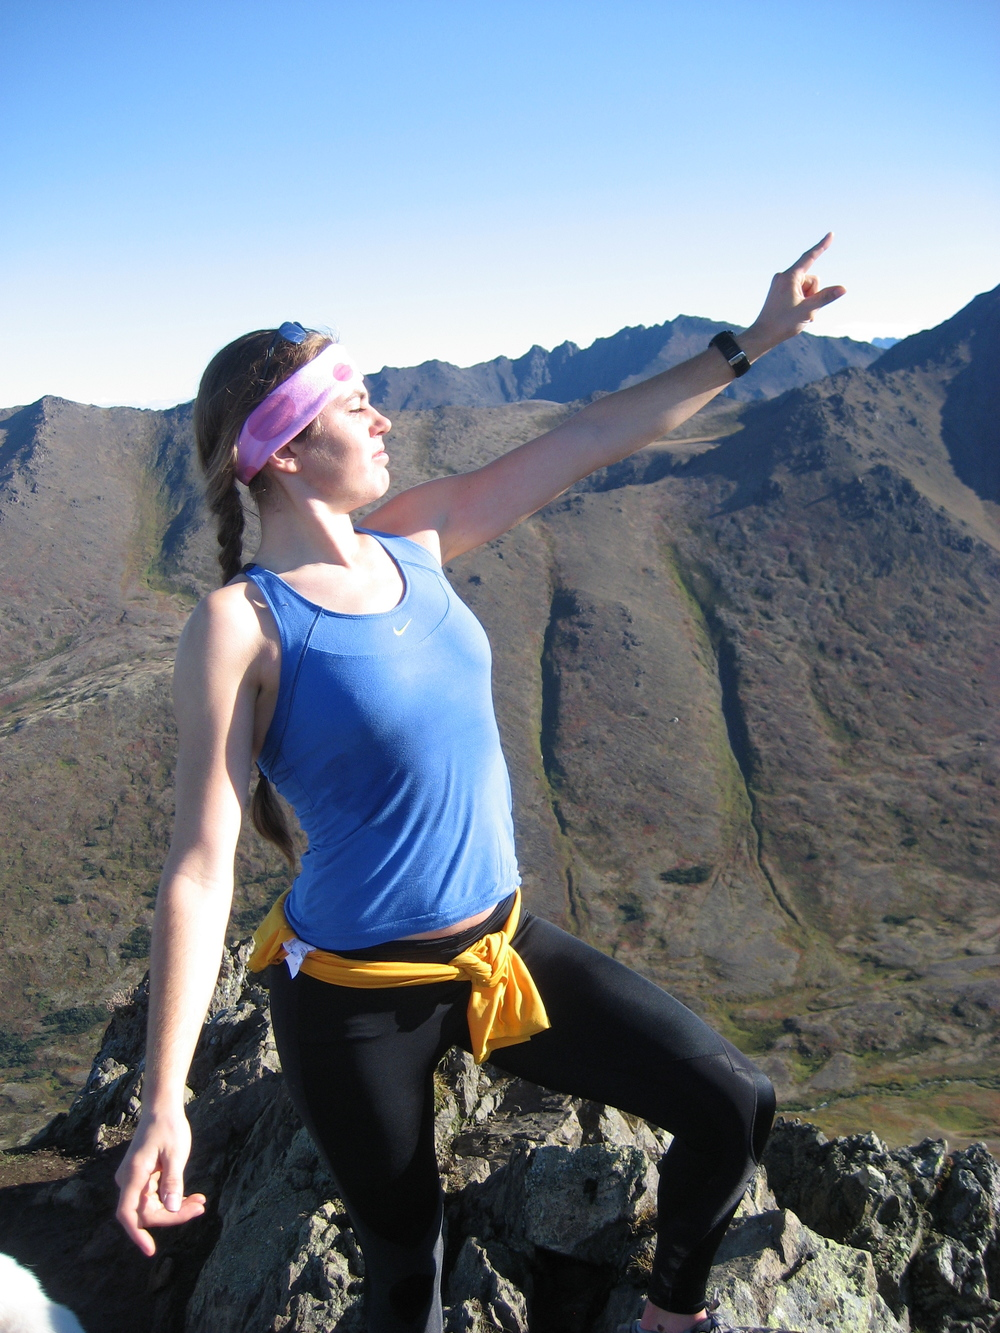 Onwards to summer training!! (throwback image from Wolverine peak in 2010... I can't wait to do some awesome Anchorage mountain running!)